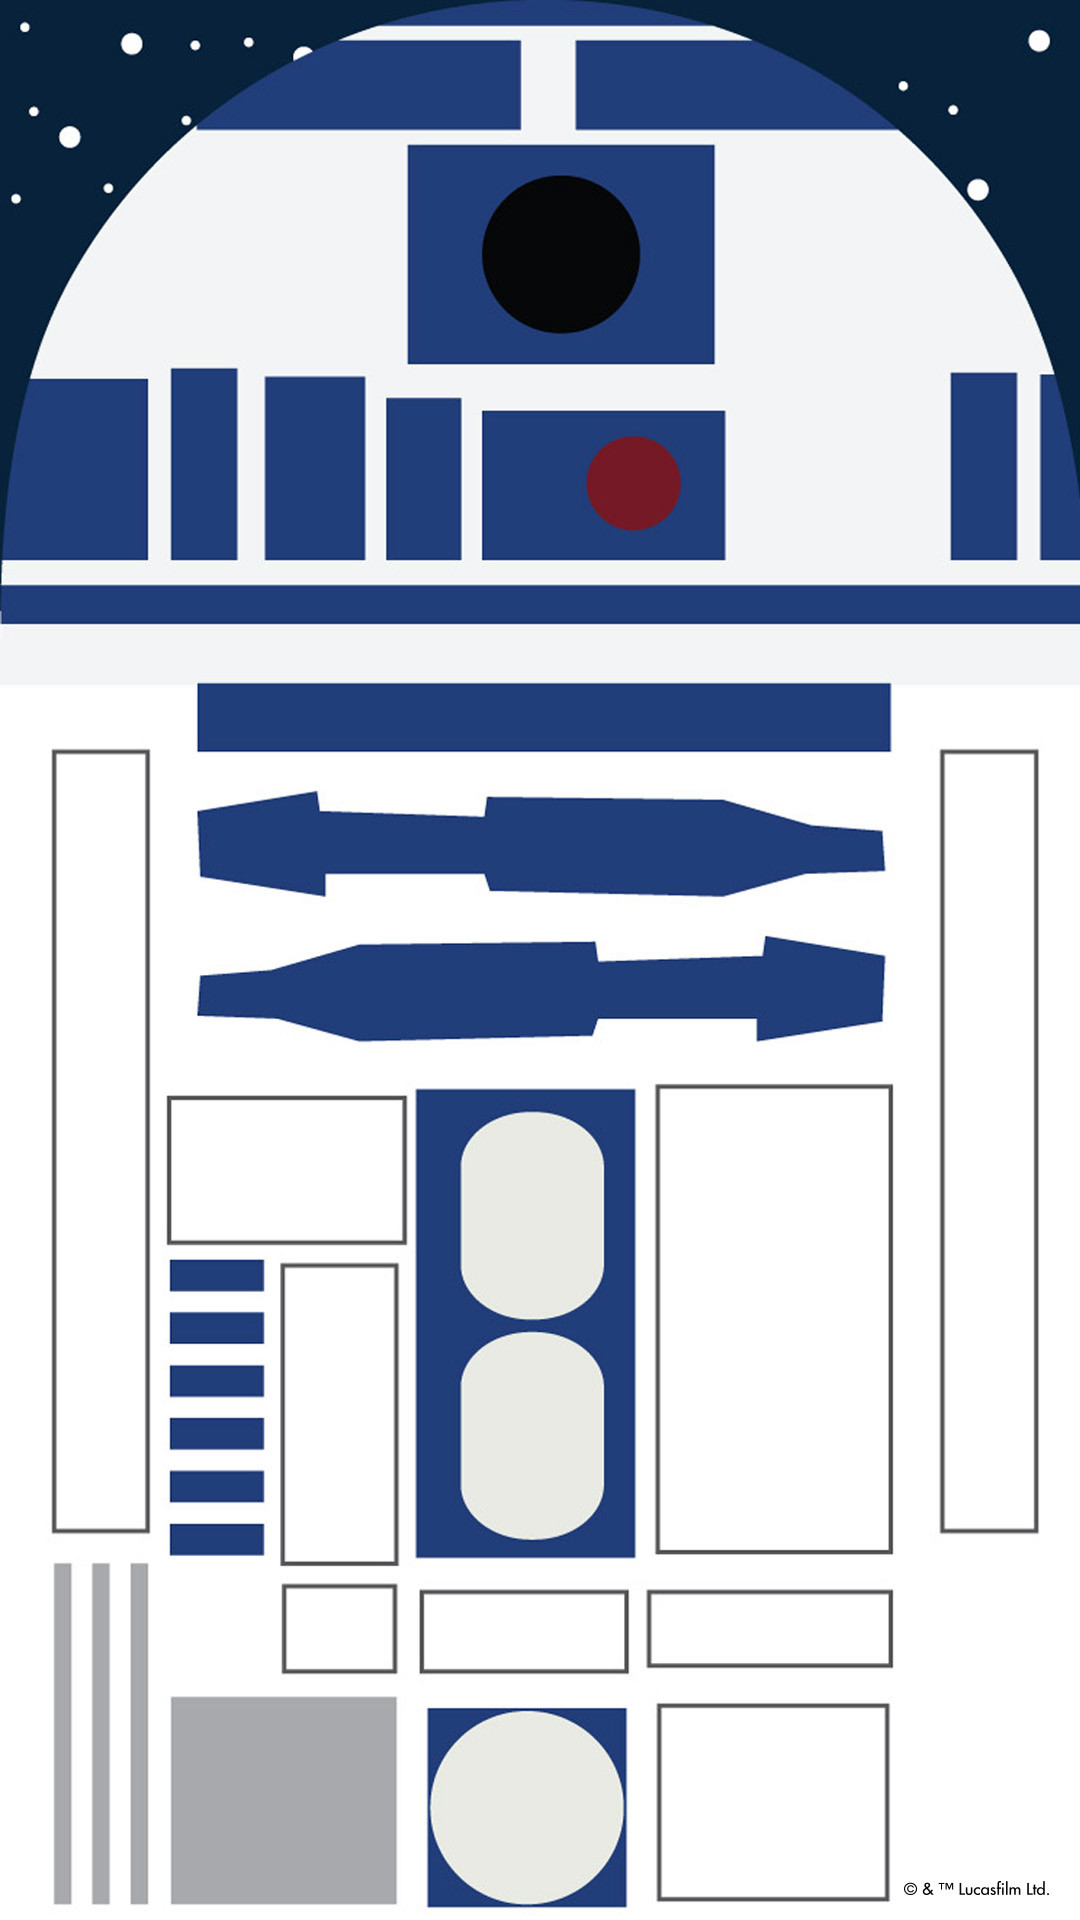 1080x1920 Star Wars iPhone R2D2 Wallpaper. iPhone 6 | iPhone 6 Plus